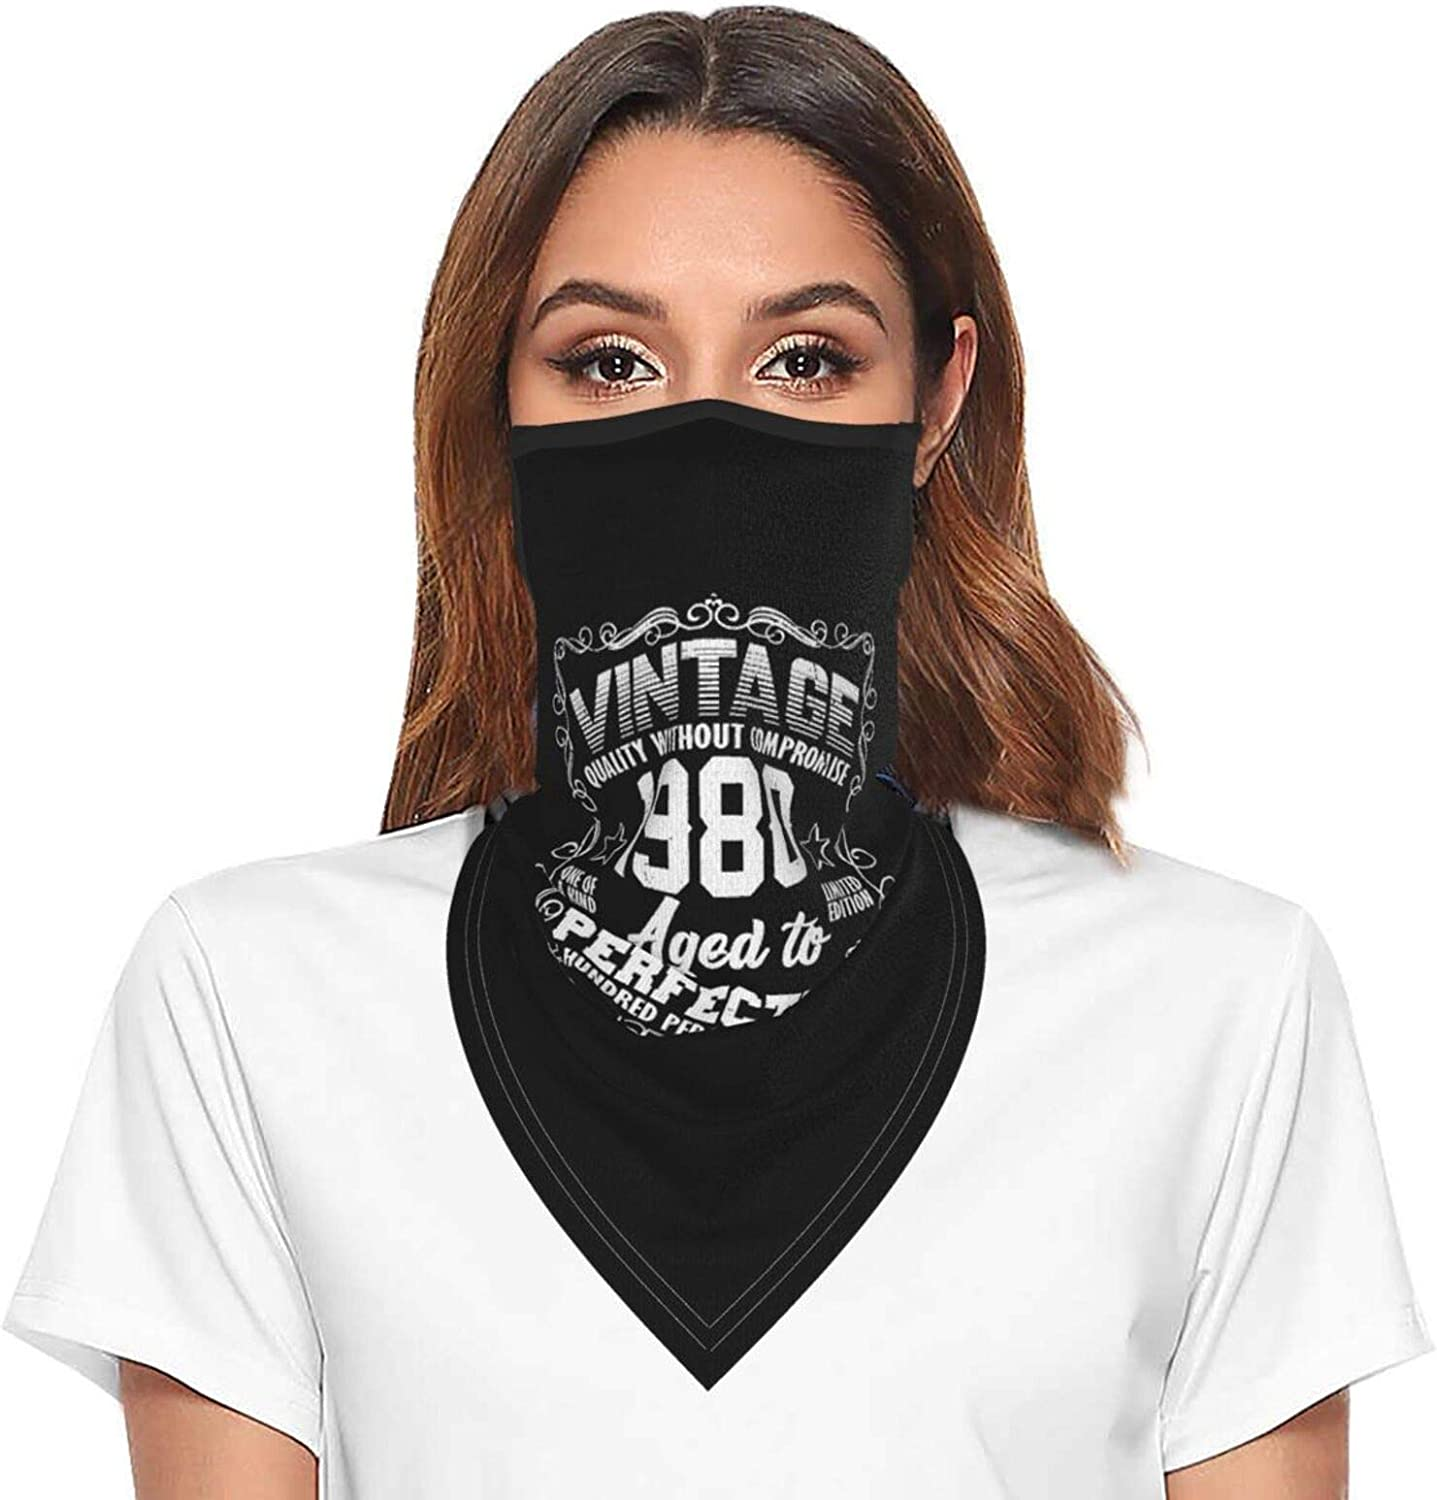 Vintage 1980 Neck Gaiter Face Mask With Ear Loops Outdoor Breathable Scarf For Men Women